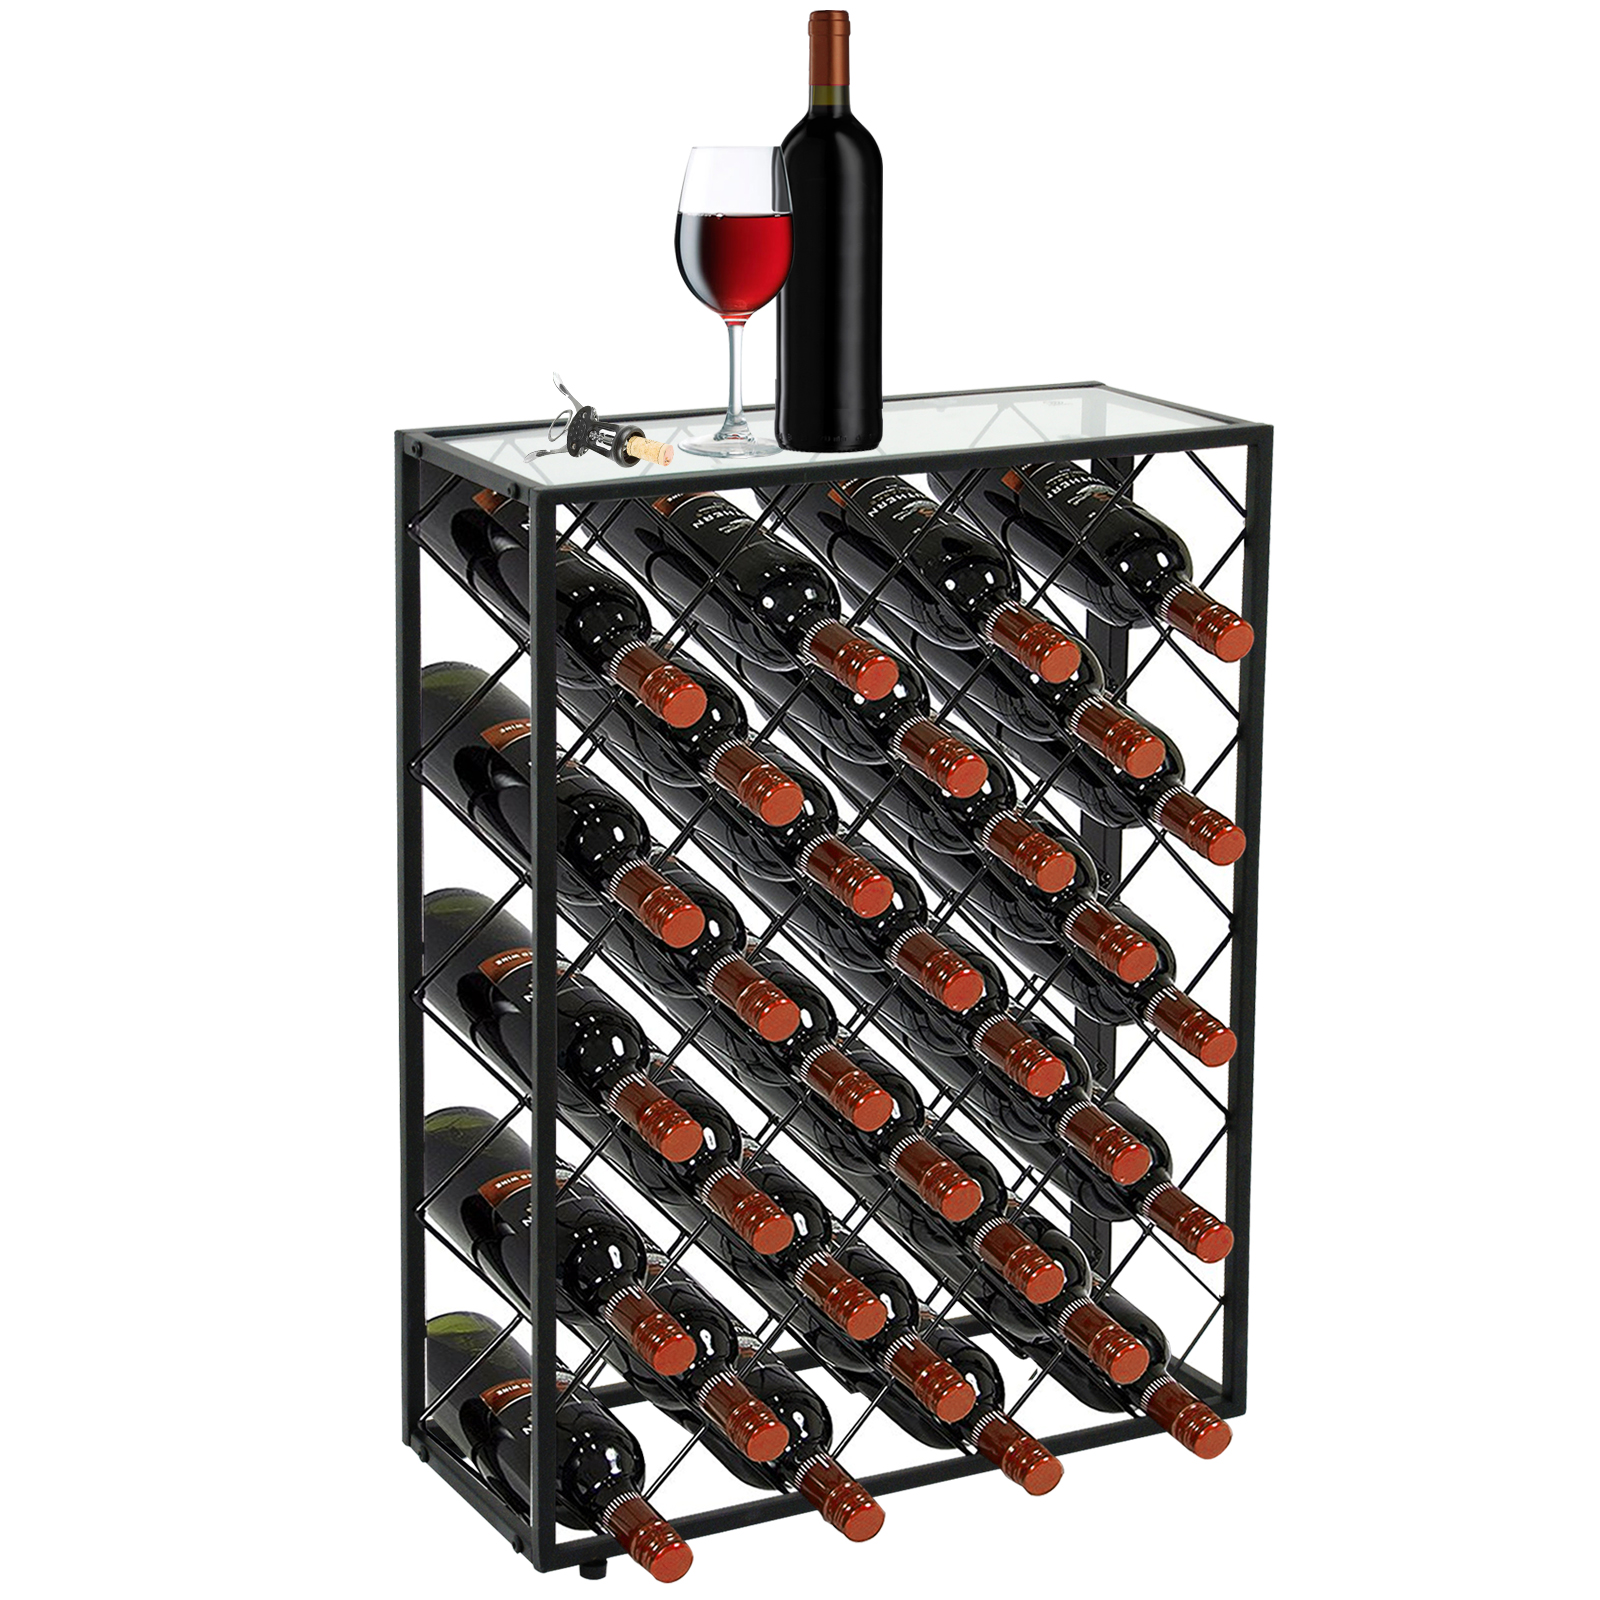 Zeny 32 Bottle Black Steel Wine Rack with Thick Glass Table Top Free Standing Floor Wine Storage Organizer Display Shelves Wobble-Free